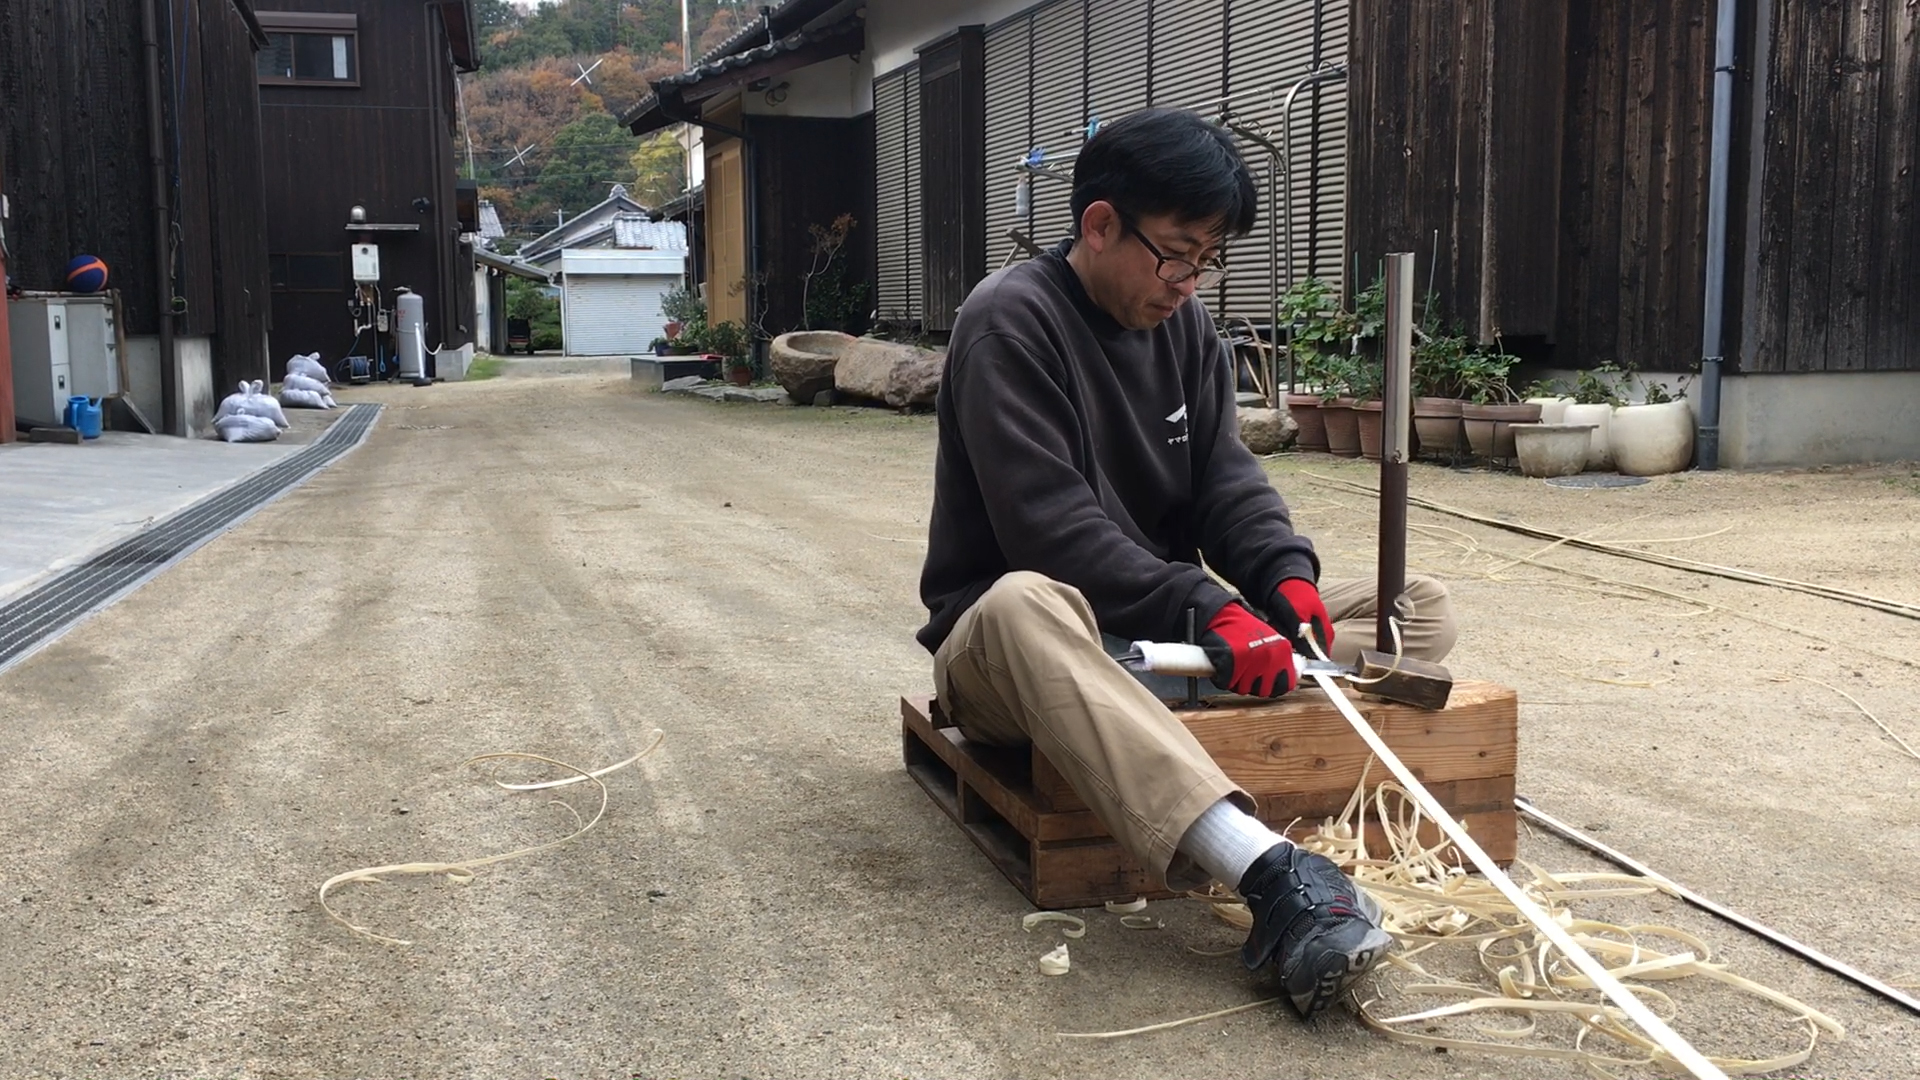 BBC - Travel - The complex art of apology in Japan